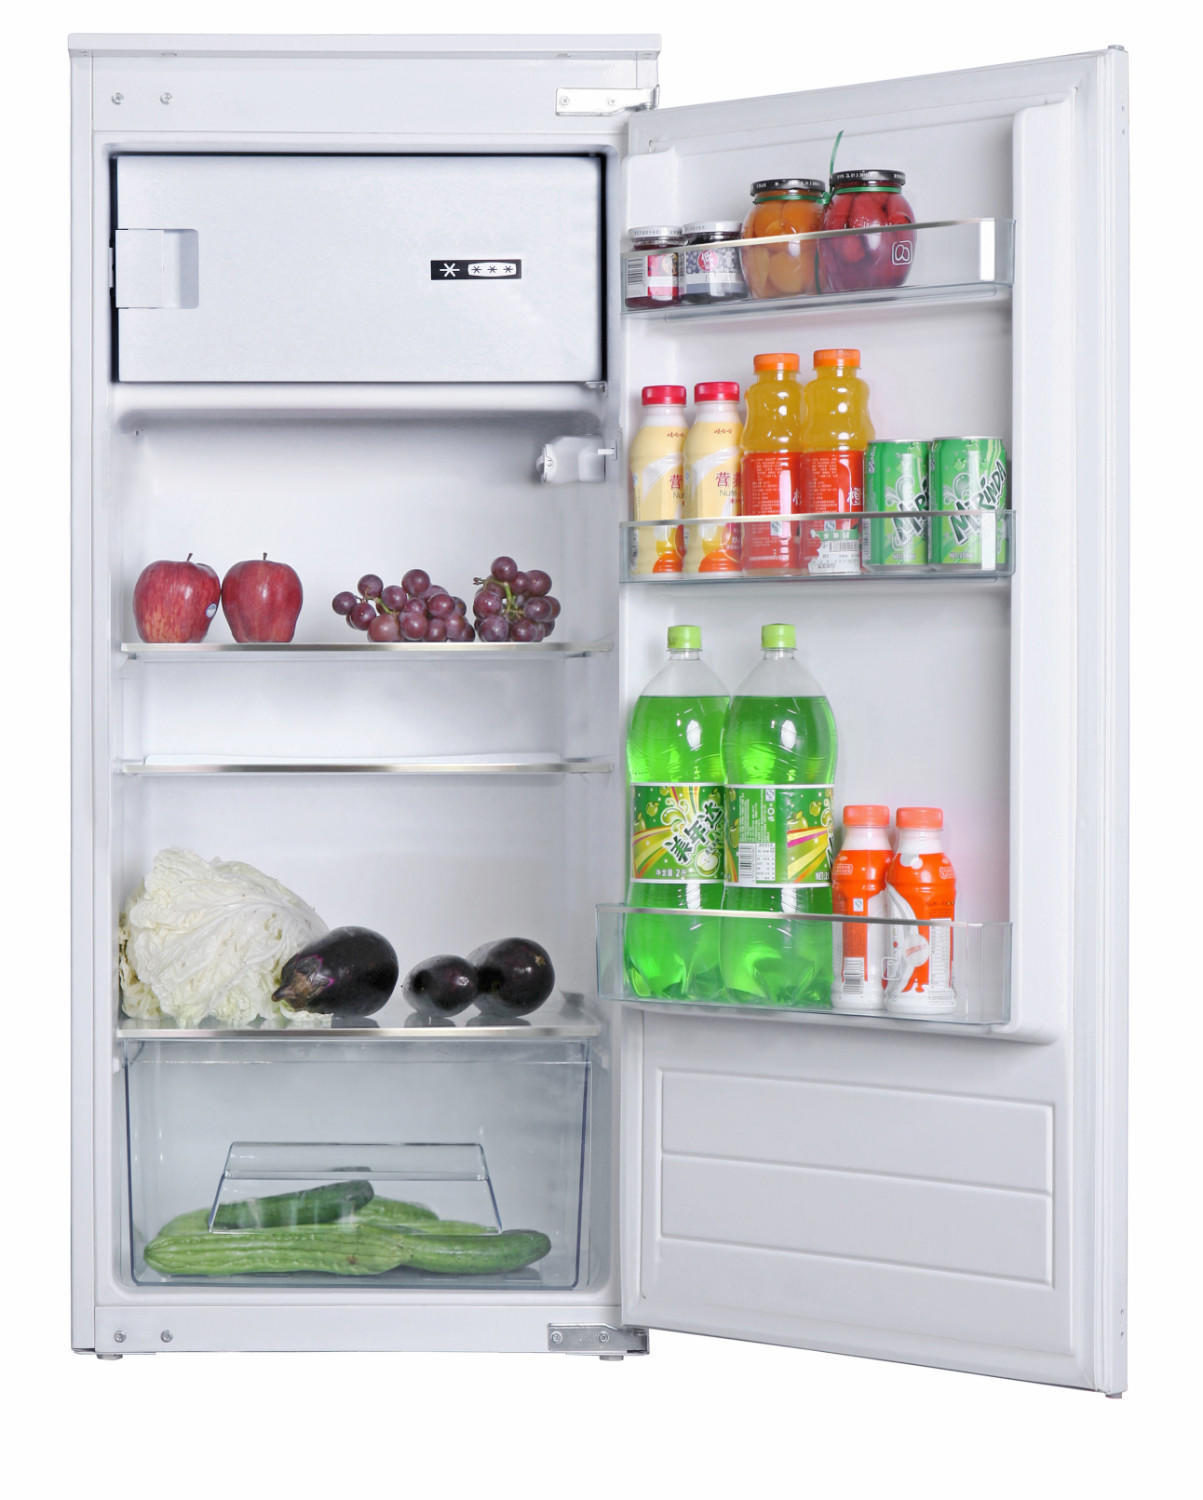 Built-in freezer 122 cm A+ - Schneider